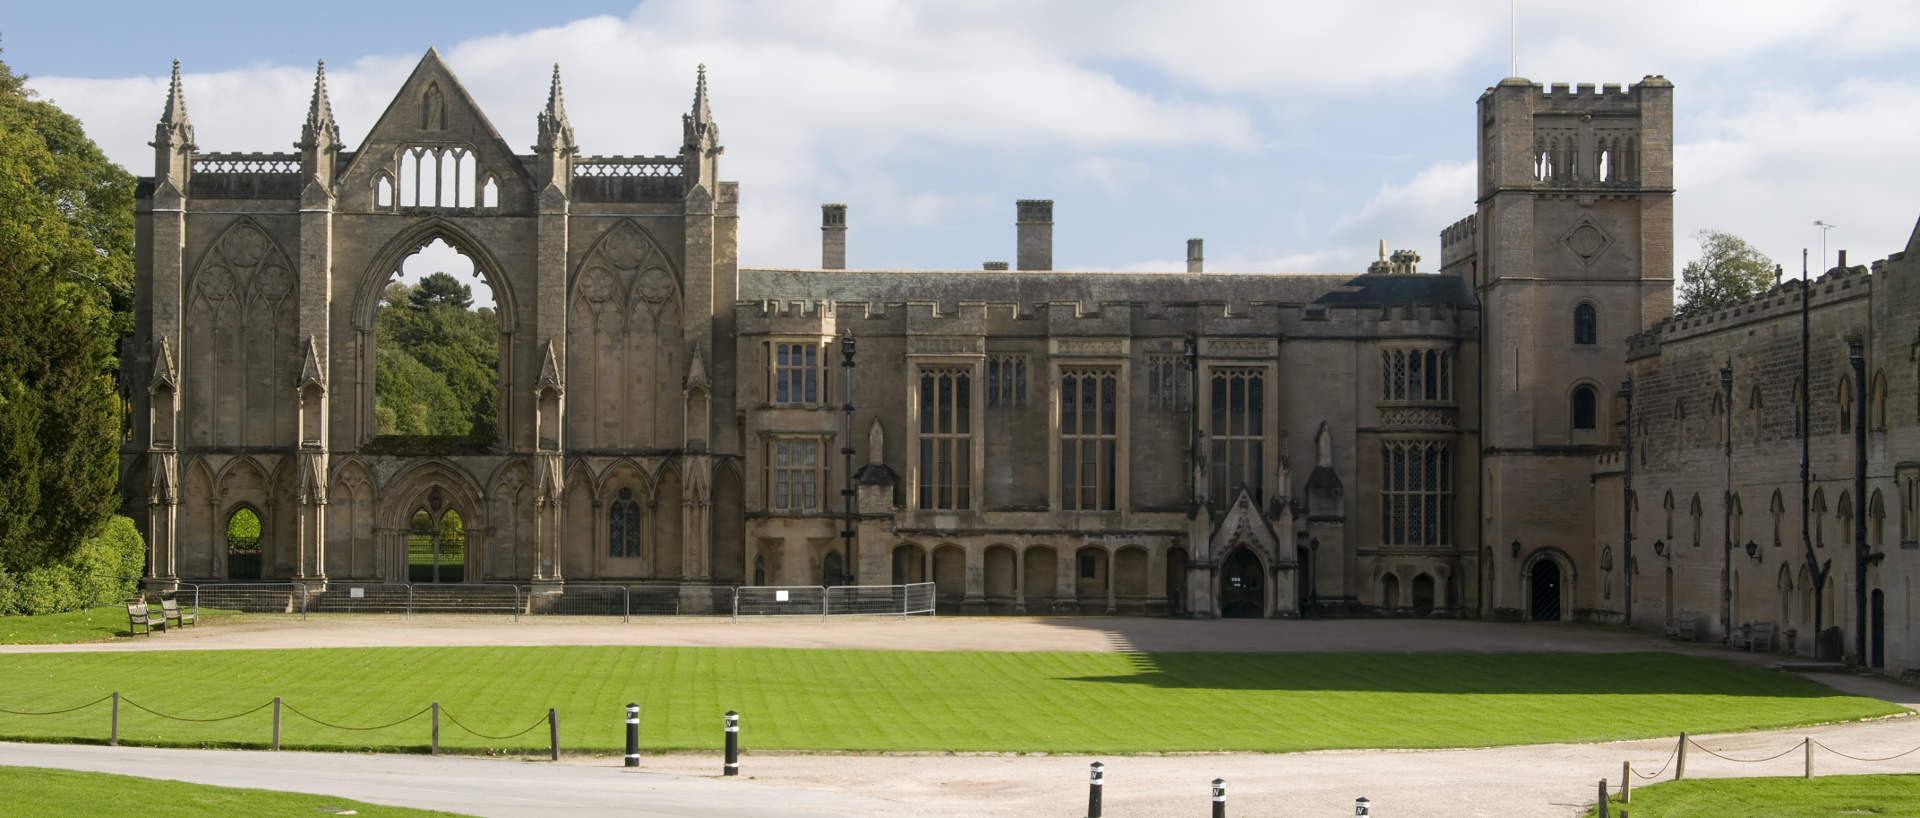 The exterior of Newstead Abbey near PREMIER SUITES Nottingham